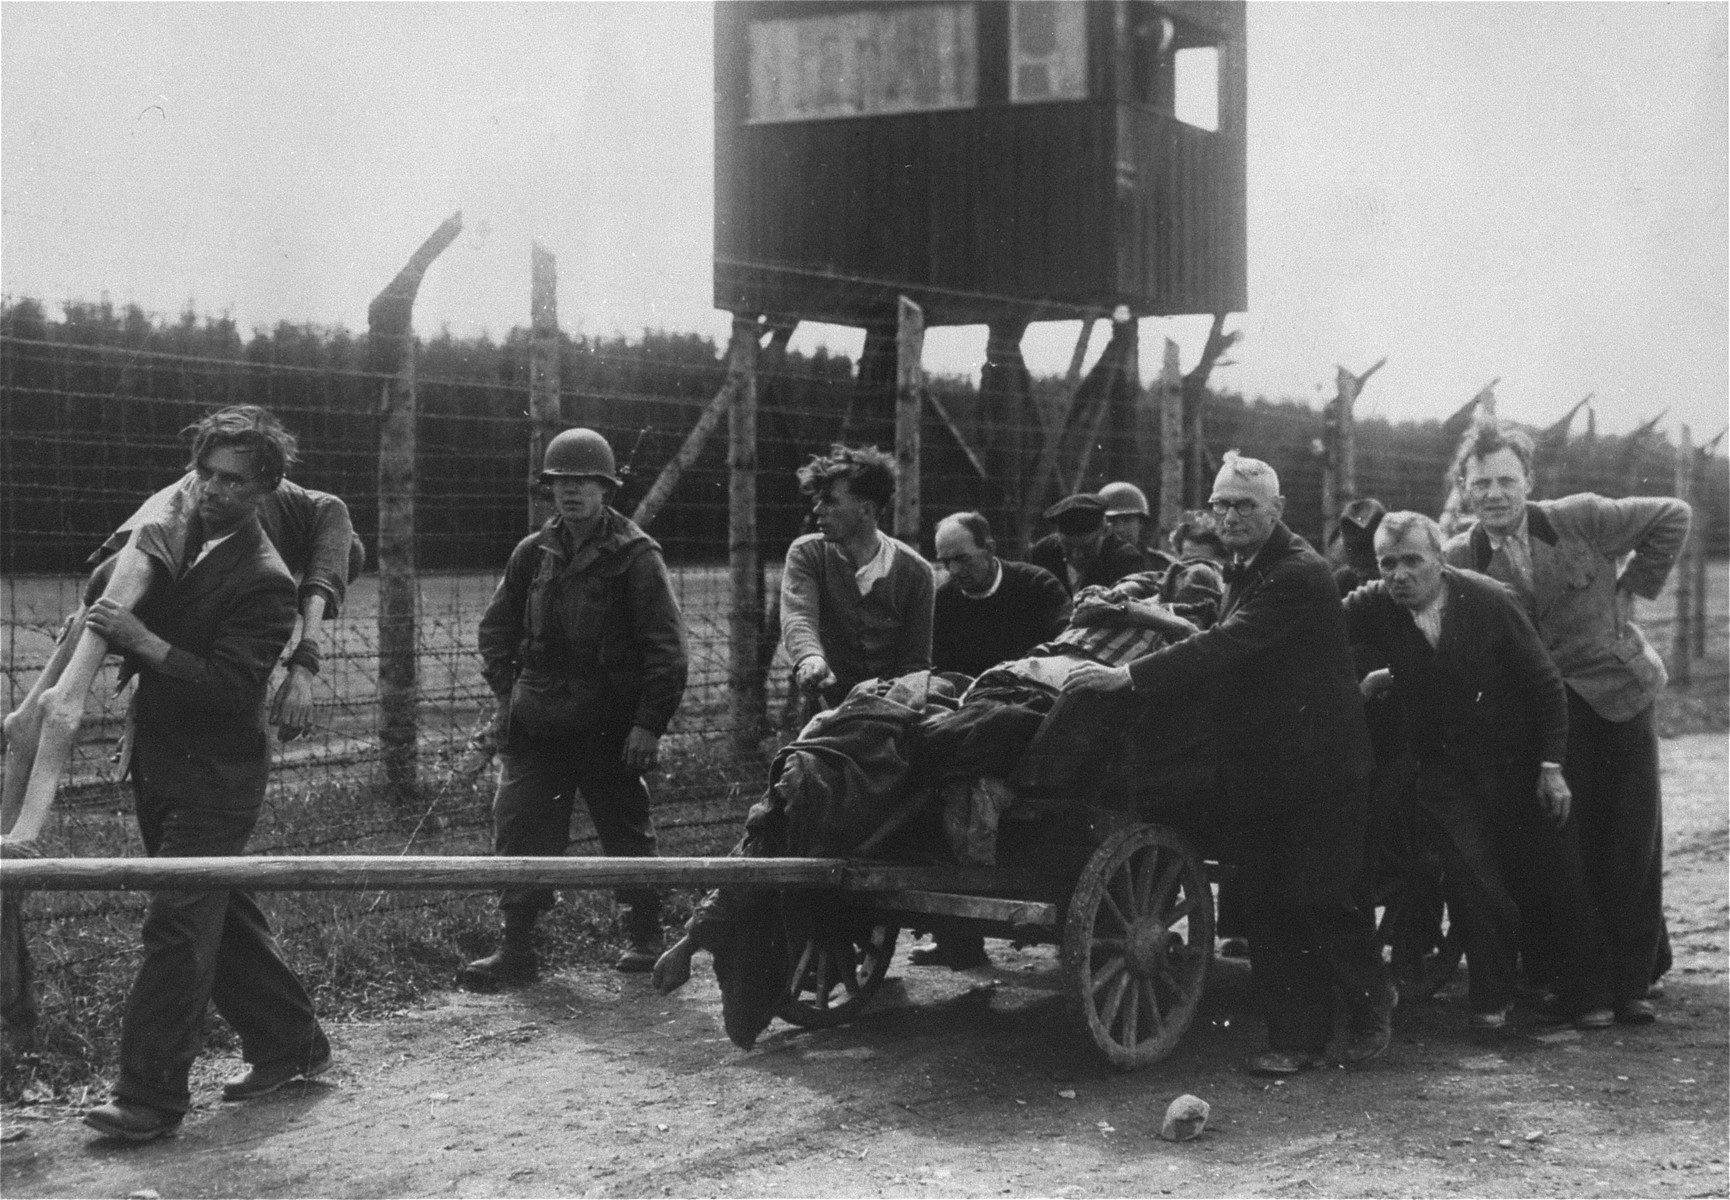 German civilians in Hurlach push a wagon laden with corpses to a mass grave for burial.